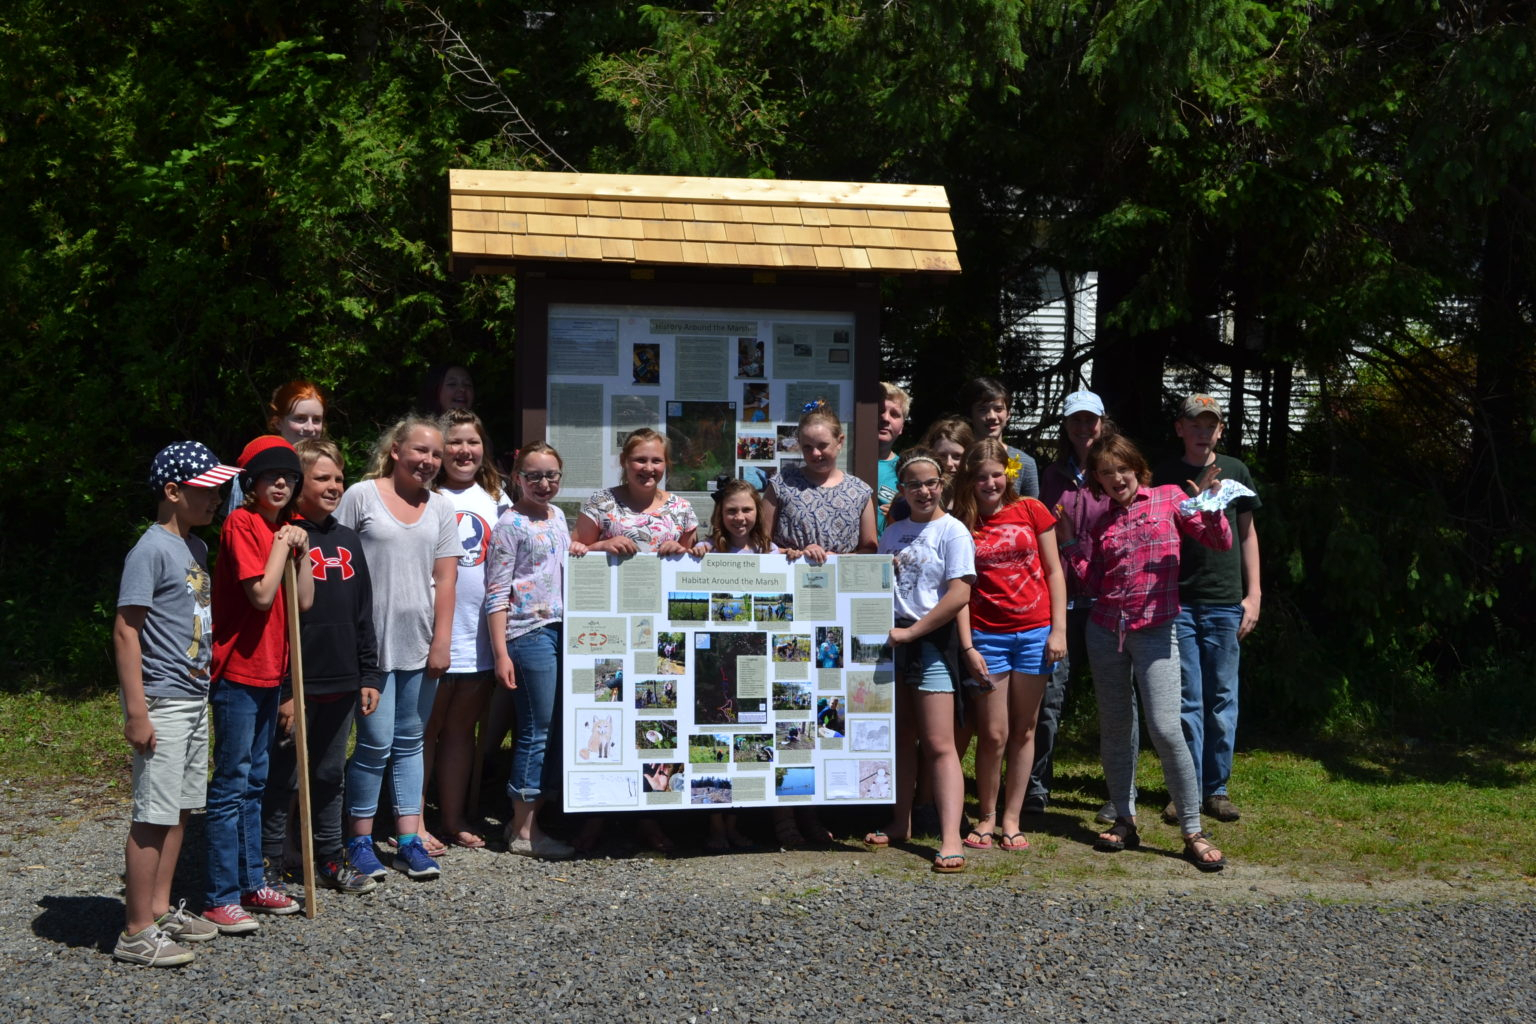 A Great Year Of Learning About Maine's Environment By Students pertaining to Edna Drinkwater School